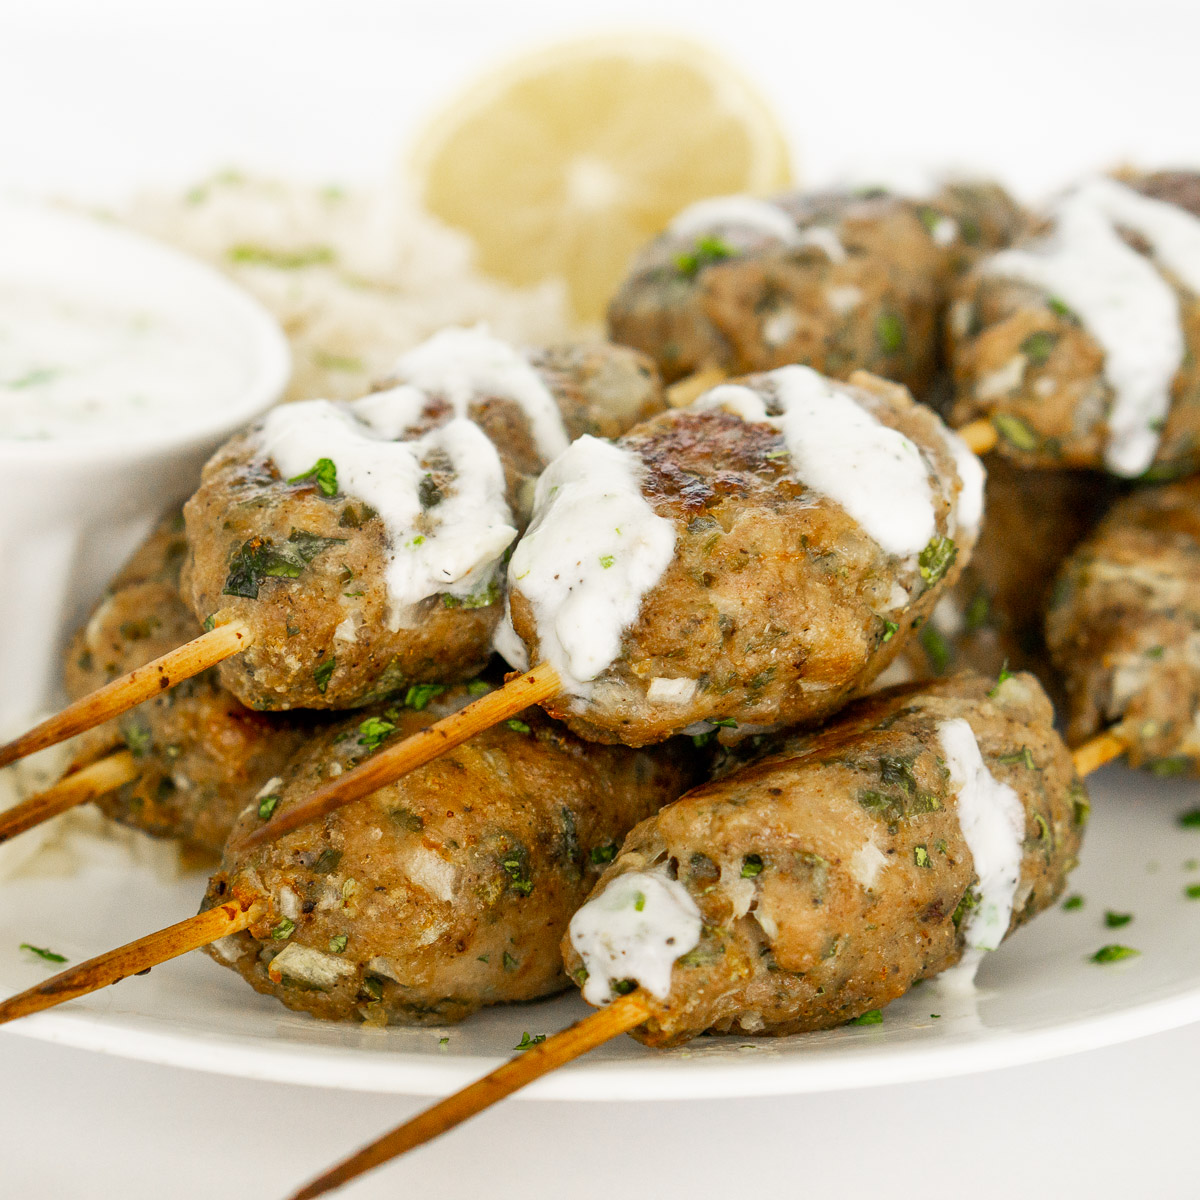 chicken kofta kebabs with yogurt sauce on a plate